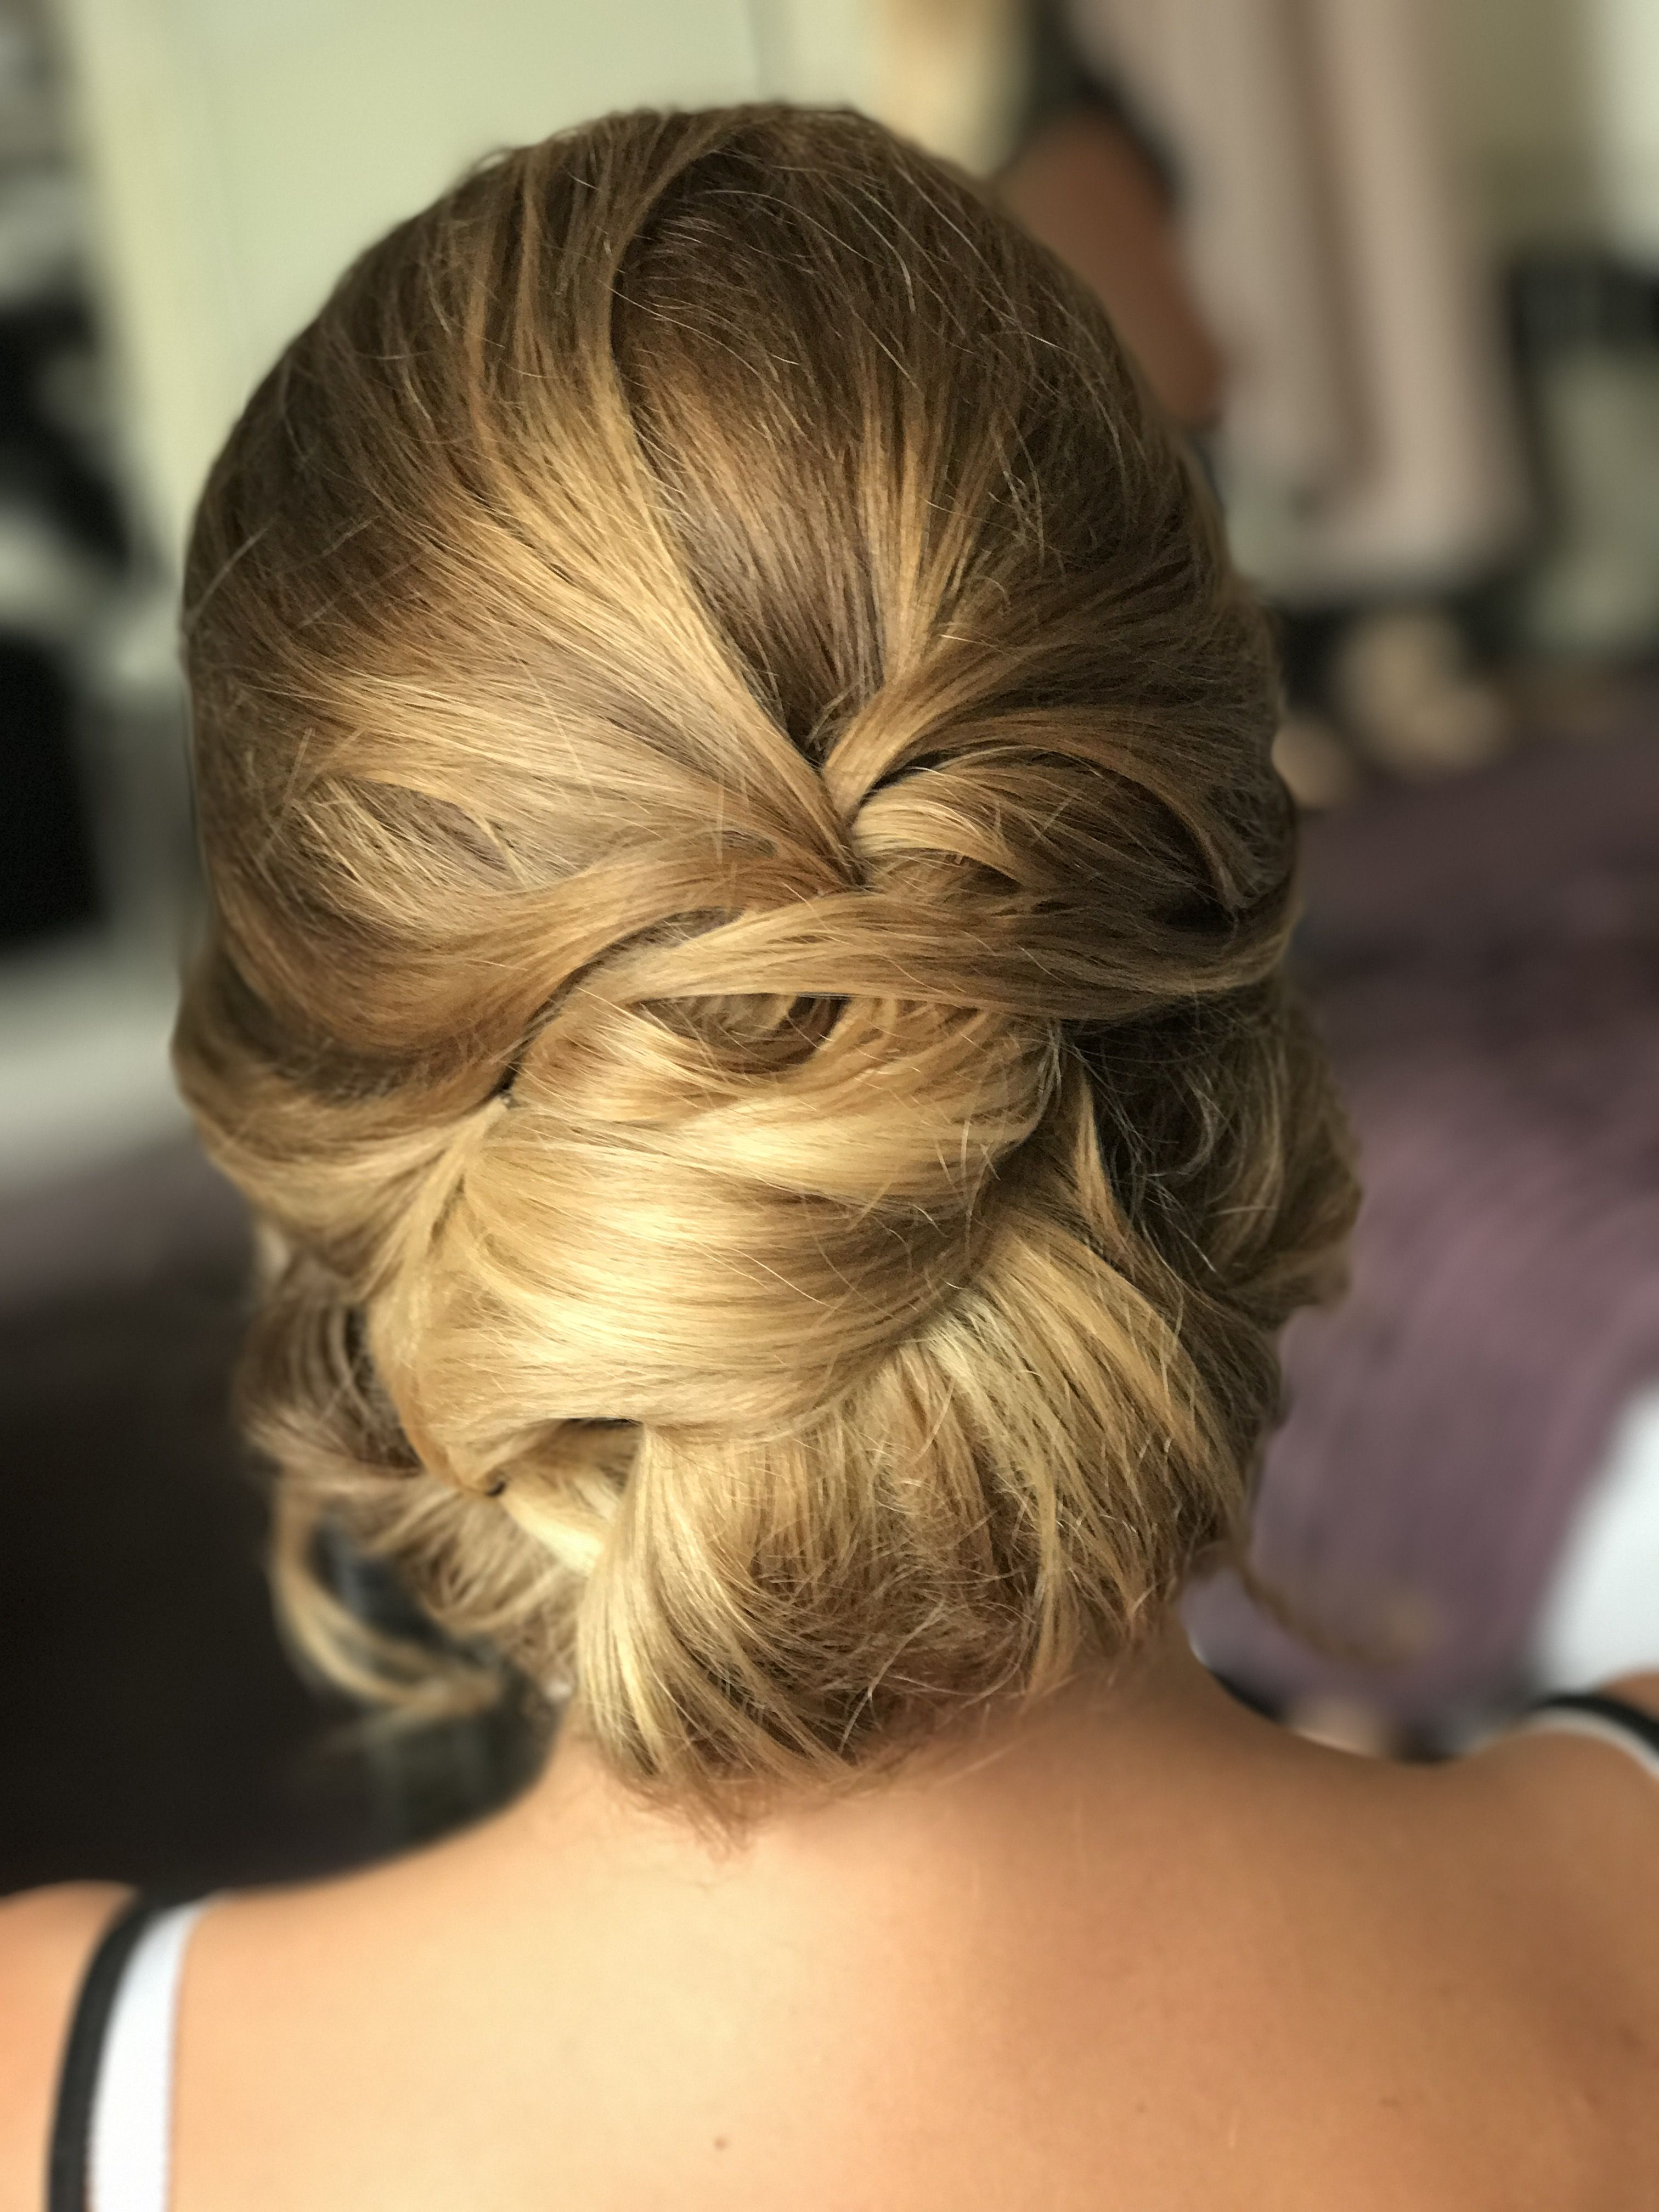 Pin By Sarah H On Hair And Beauty In 2019 Long Hair